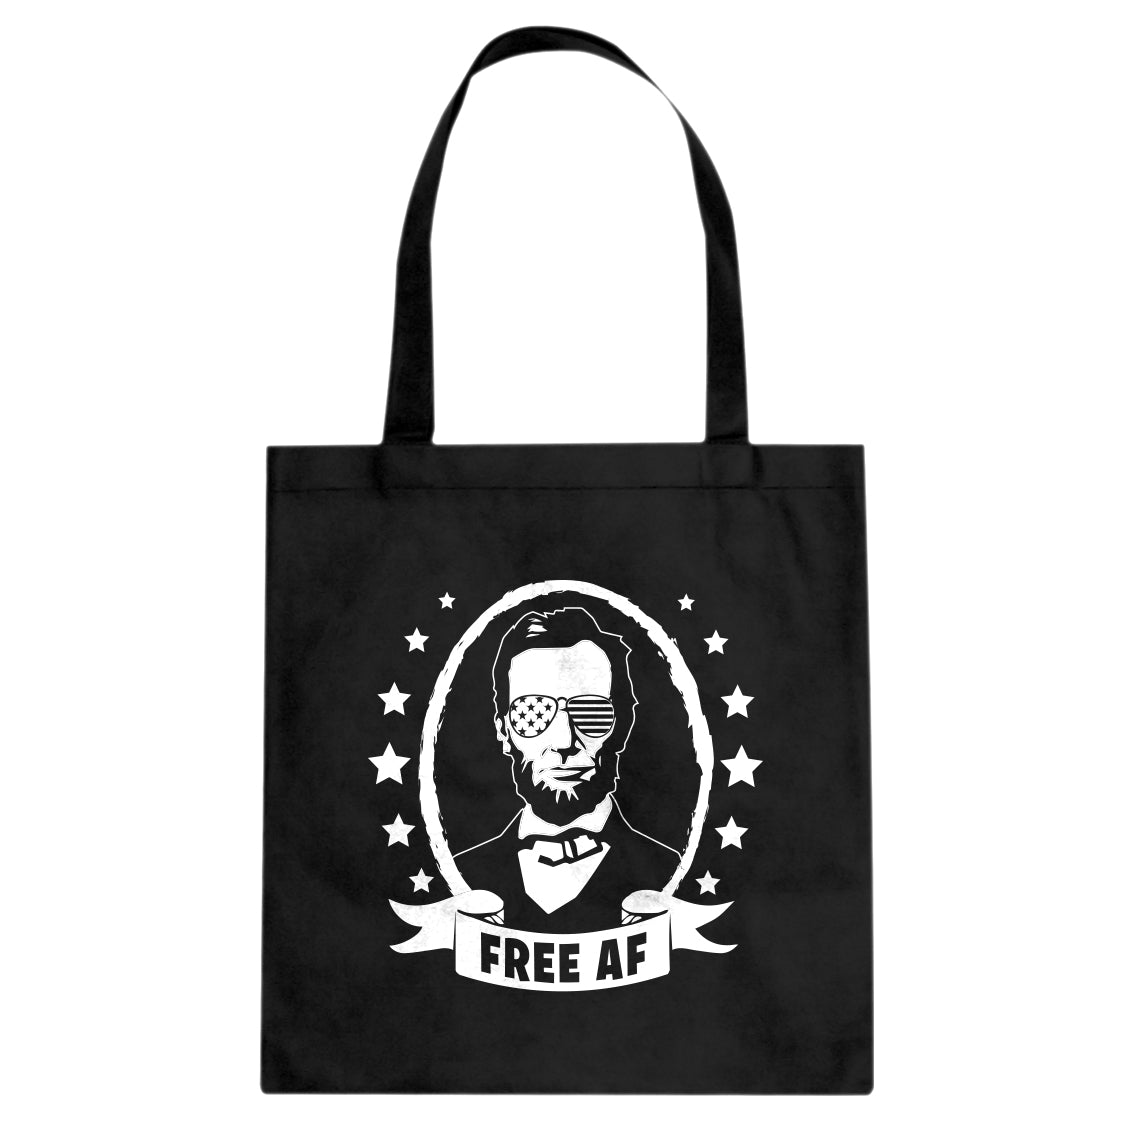 Free AF Cotton Canvas Tote Bag